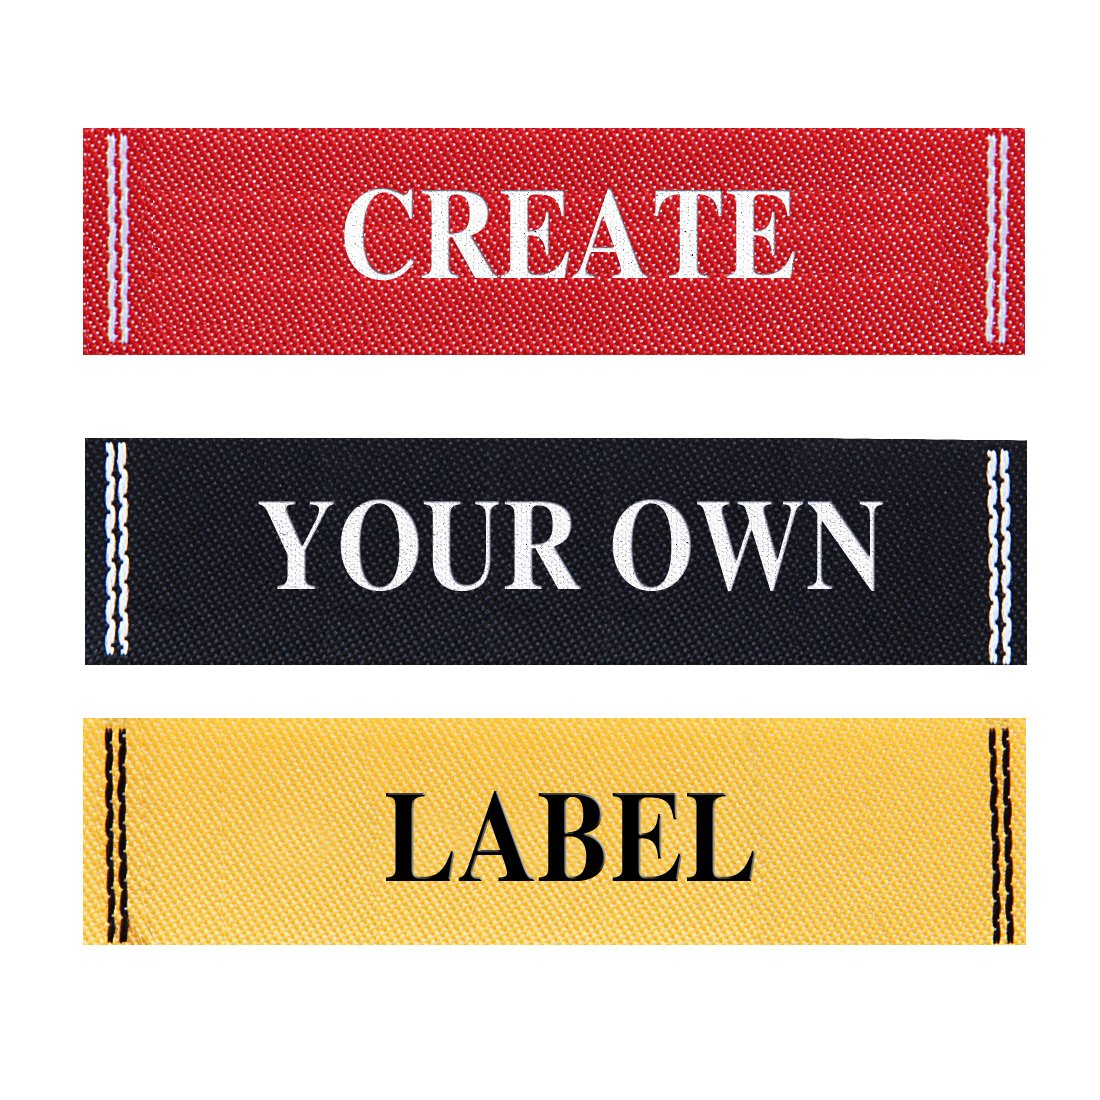 Wunderlabel Personalized Custom Customize Standard Woven with Frame Crafting Fashion Ribbon Ribbons Tag Clothing Sewing Sew Clothes Garment Fabric Material Embroidered Label Labels Tags, 100 Labels